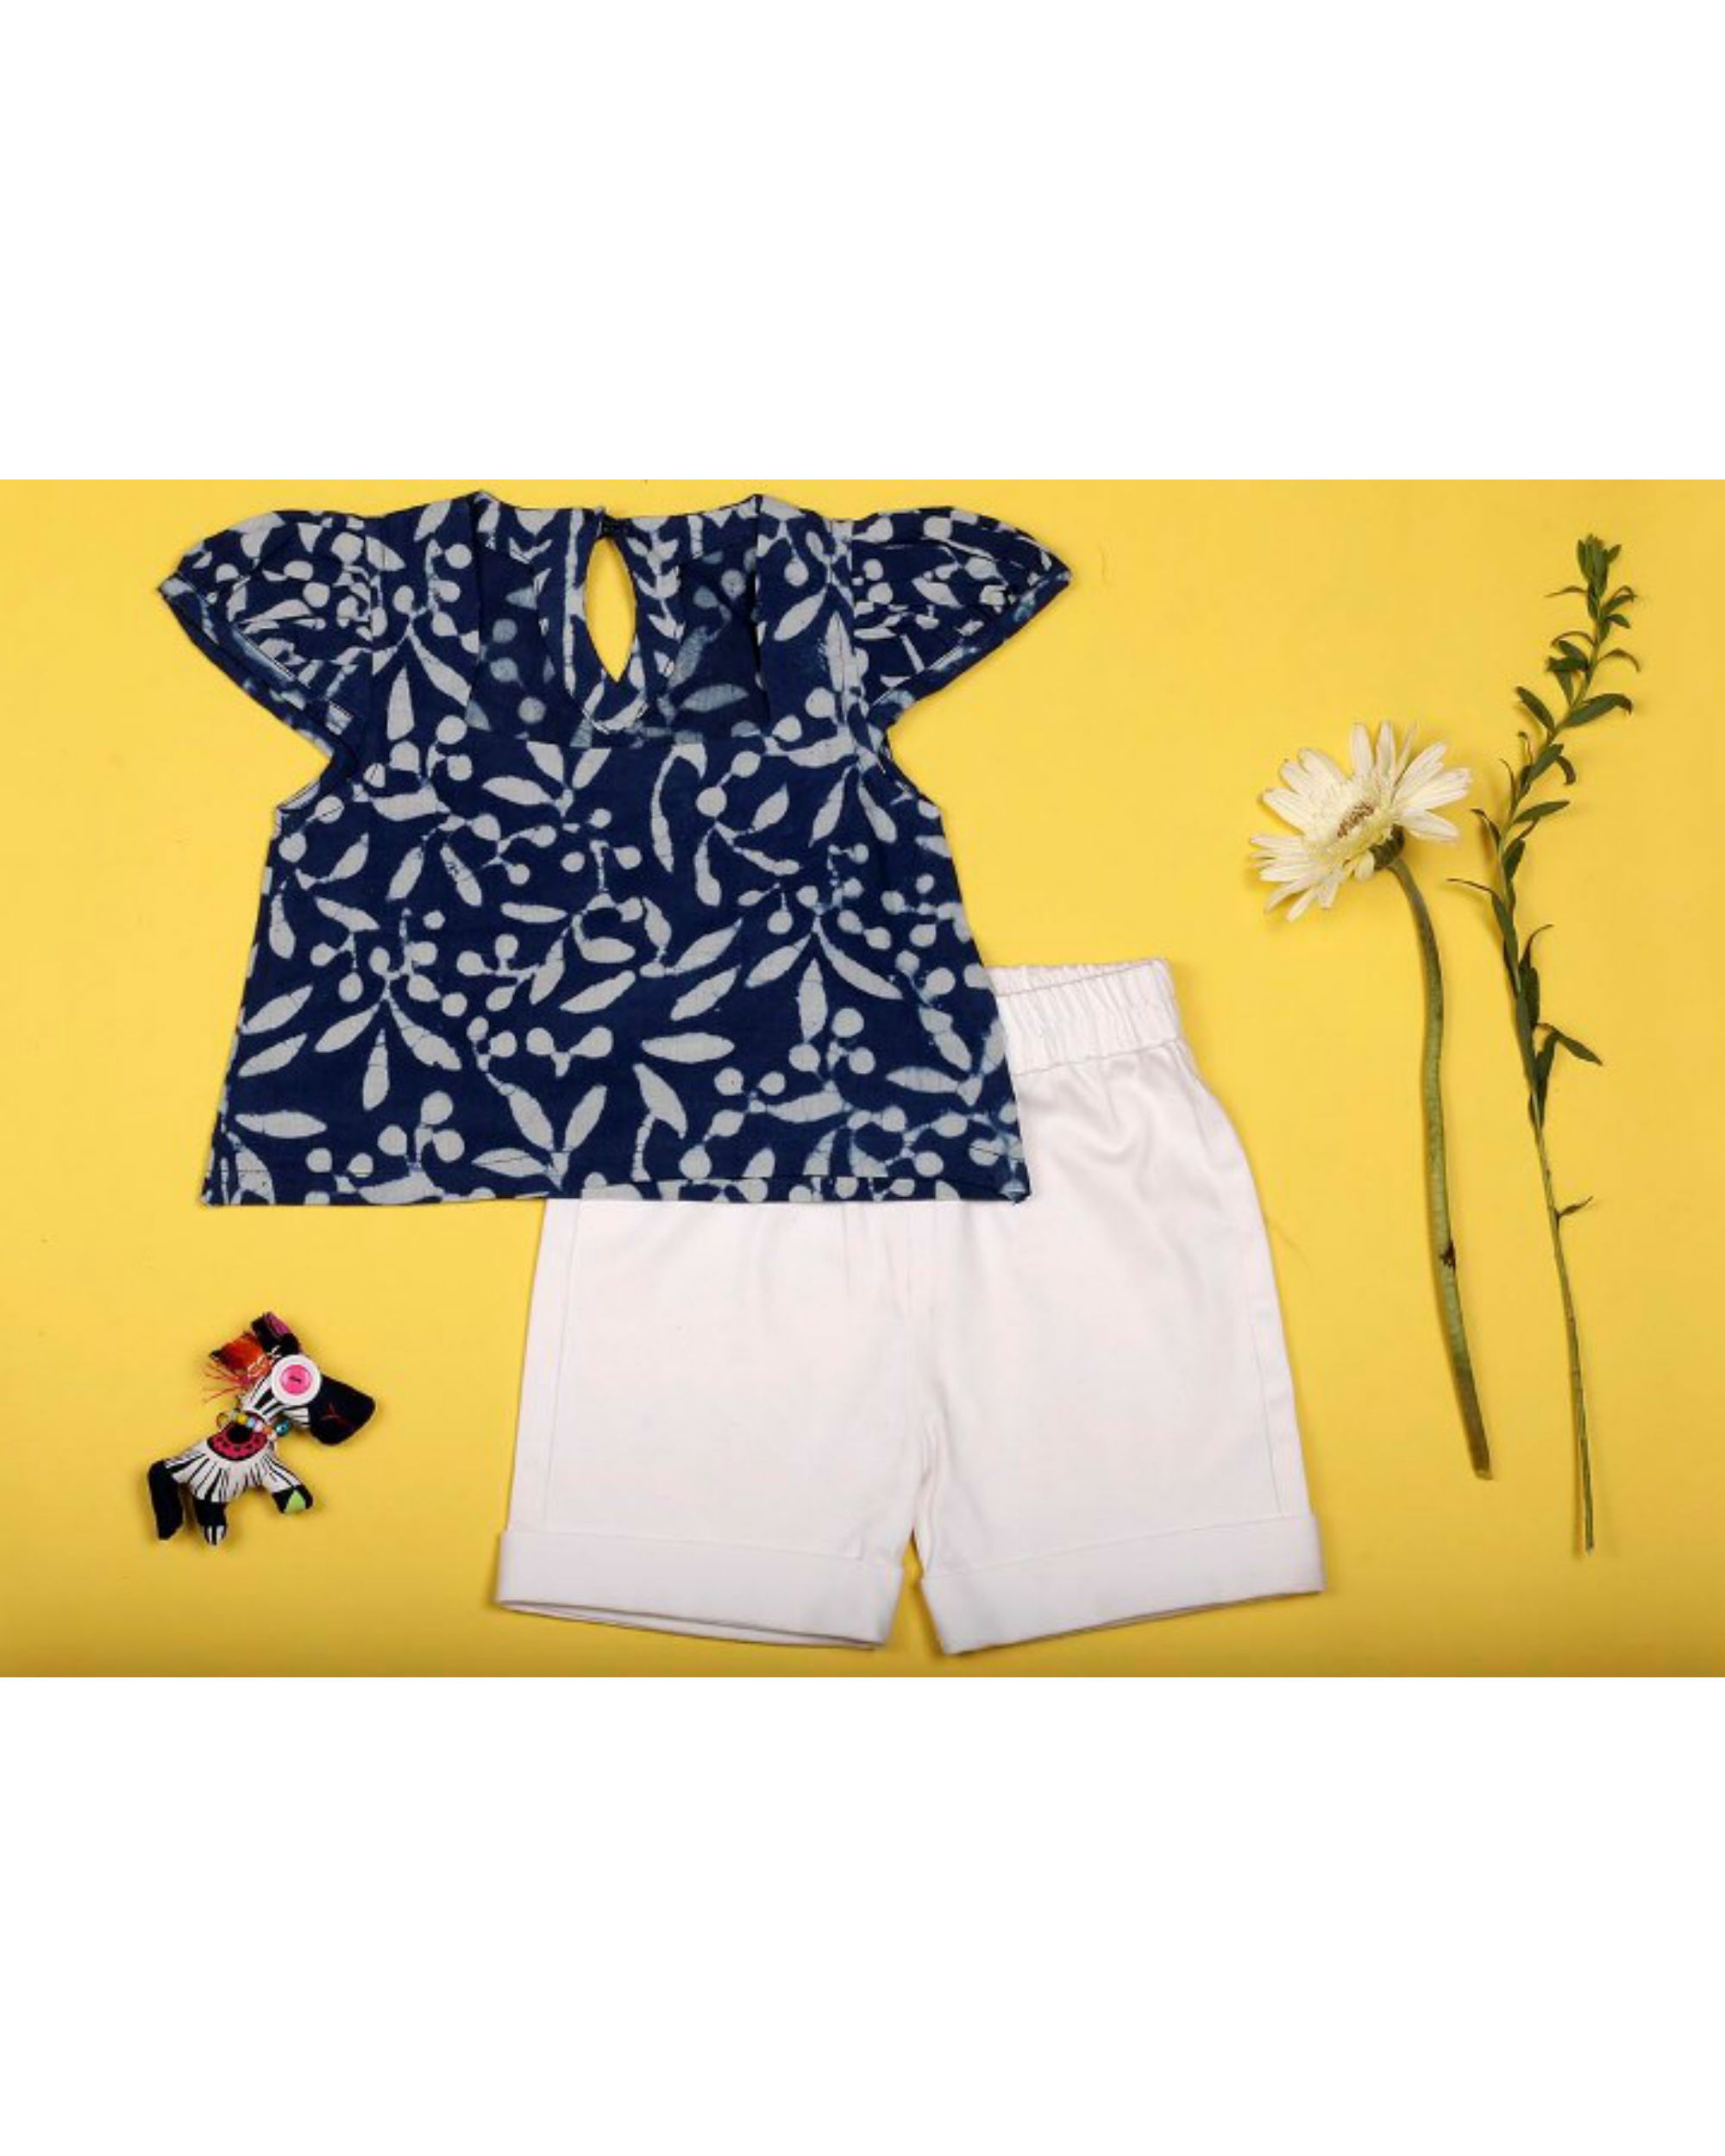 Indigo floral top with white shorts